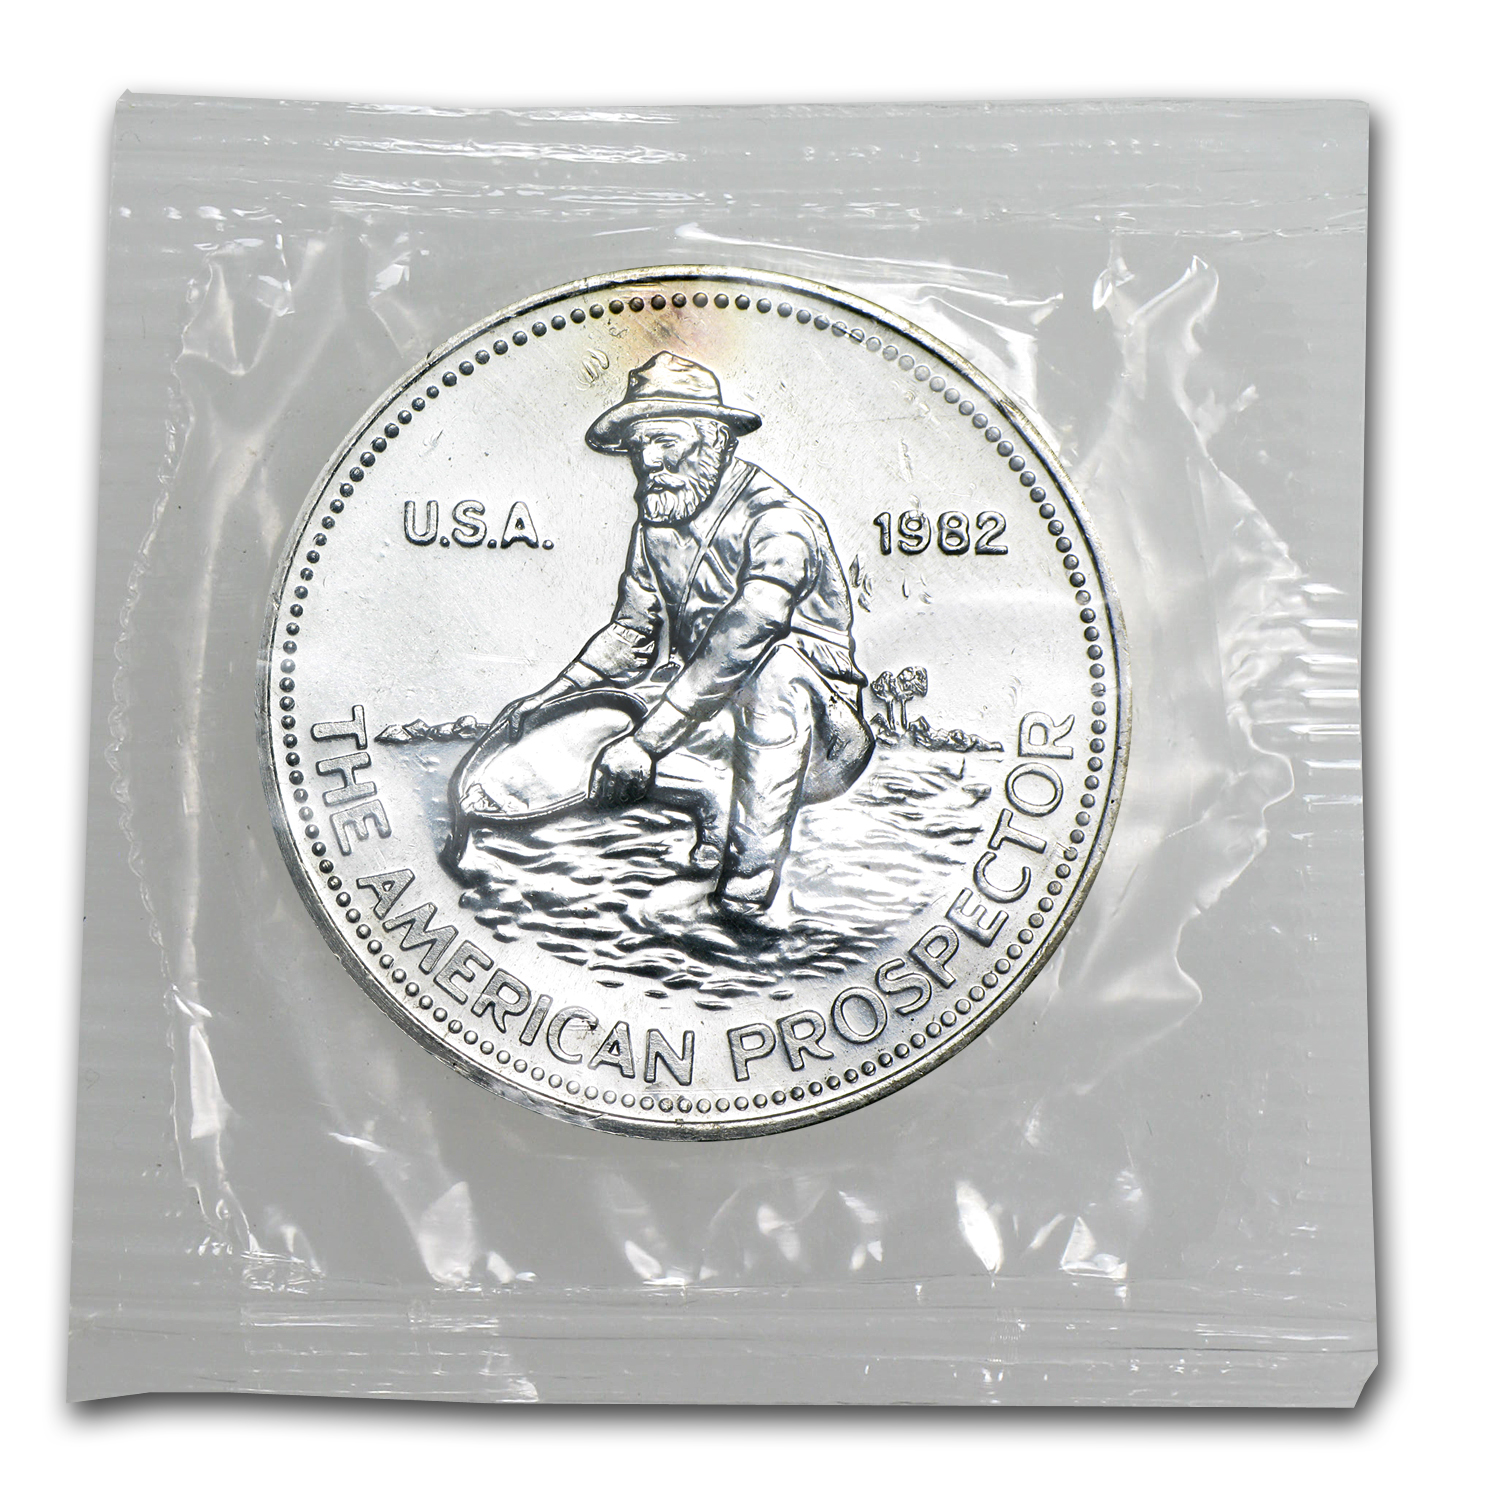 1 oz Silver Rounds - Engelhard Prospector (Sealed - Very Nice)